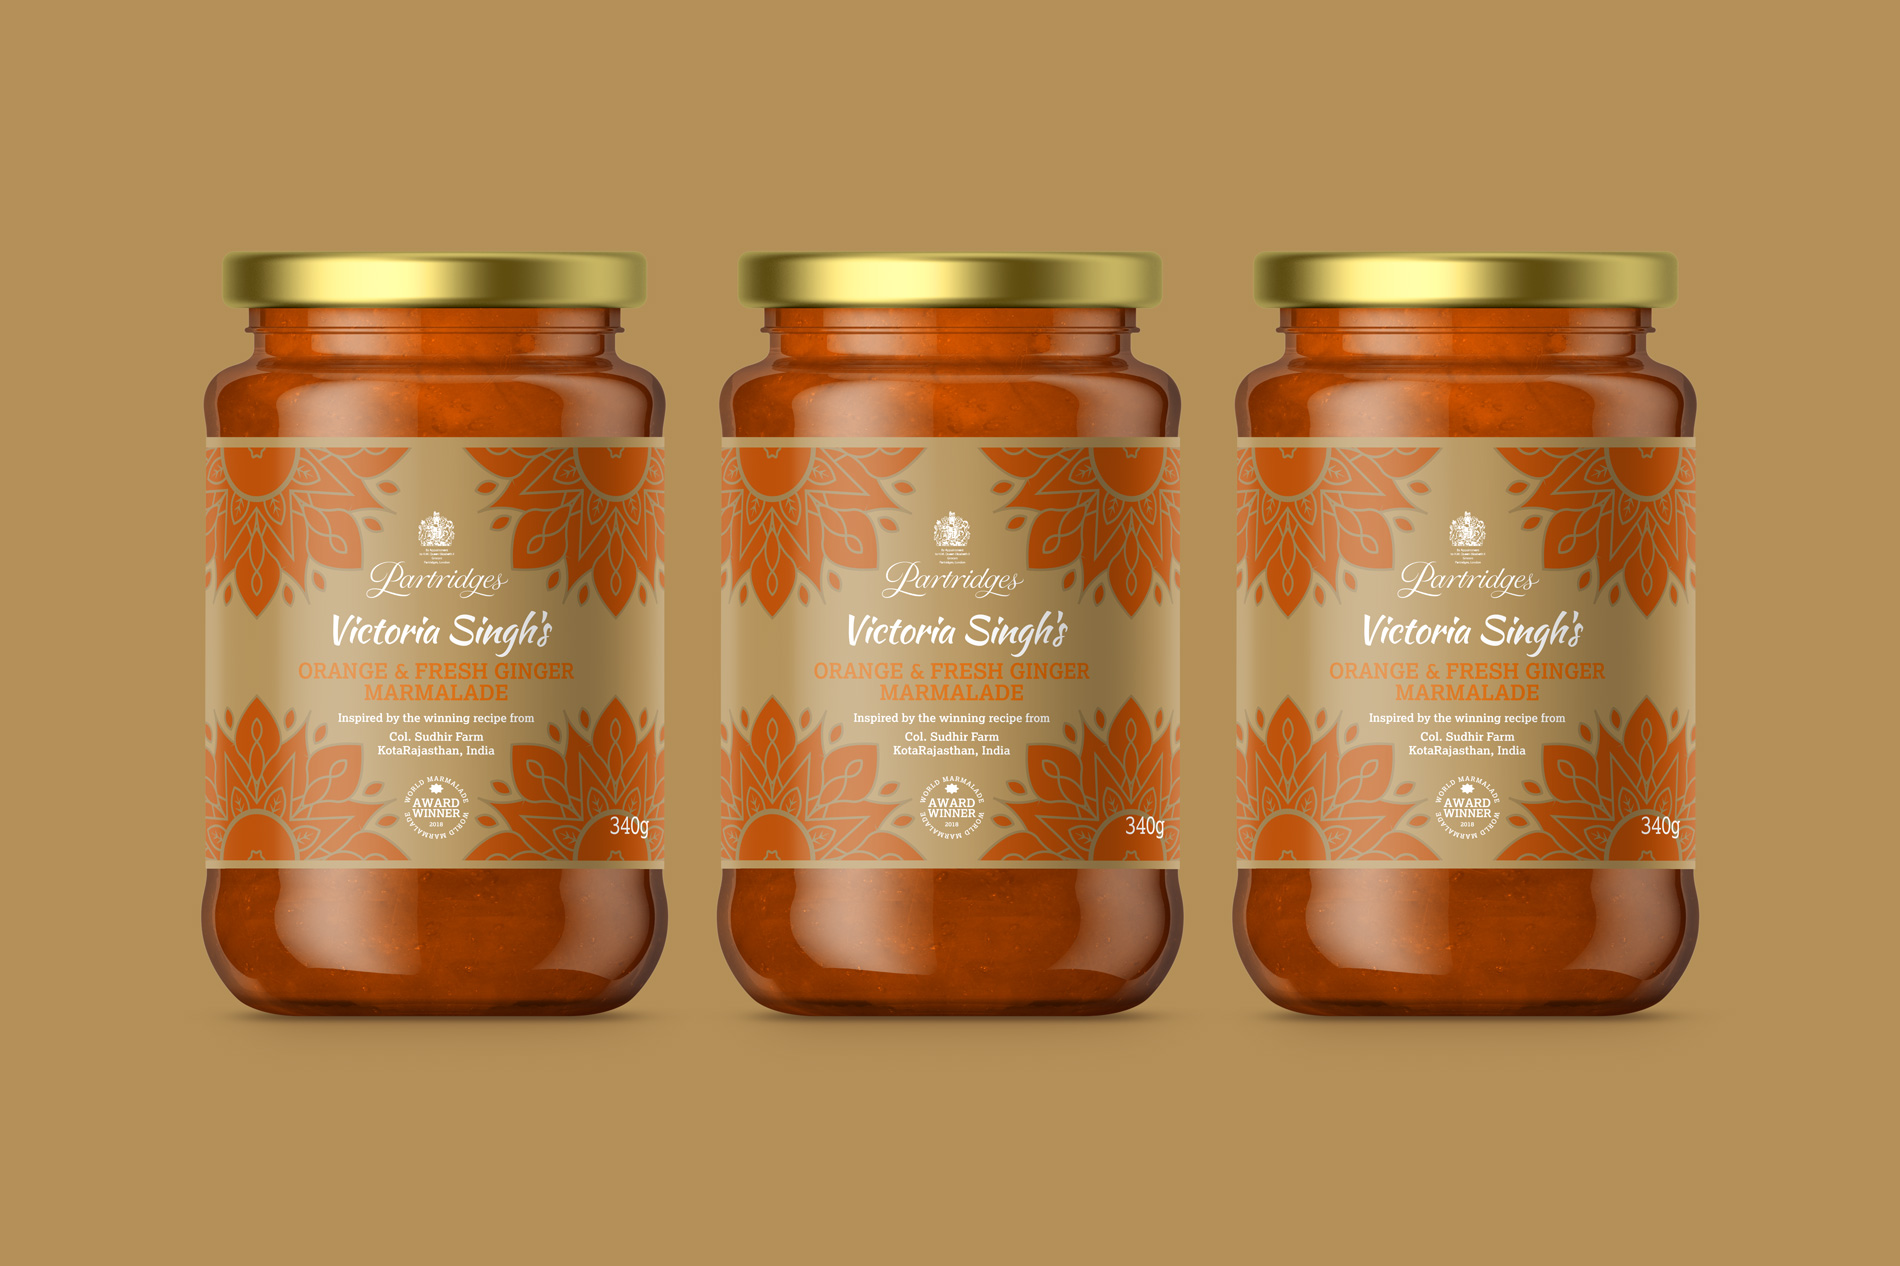 Partridge's of London - Commonwealth Marmalade Label Design